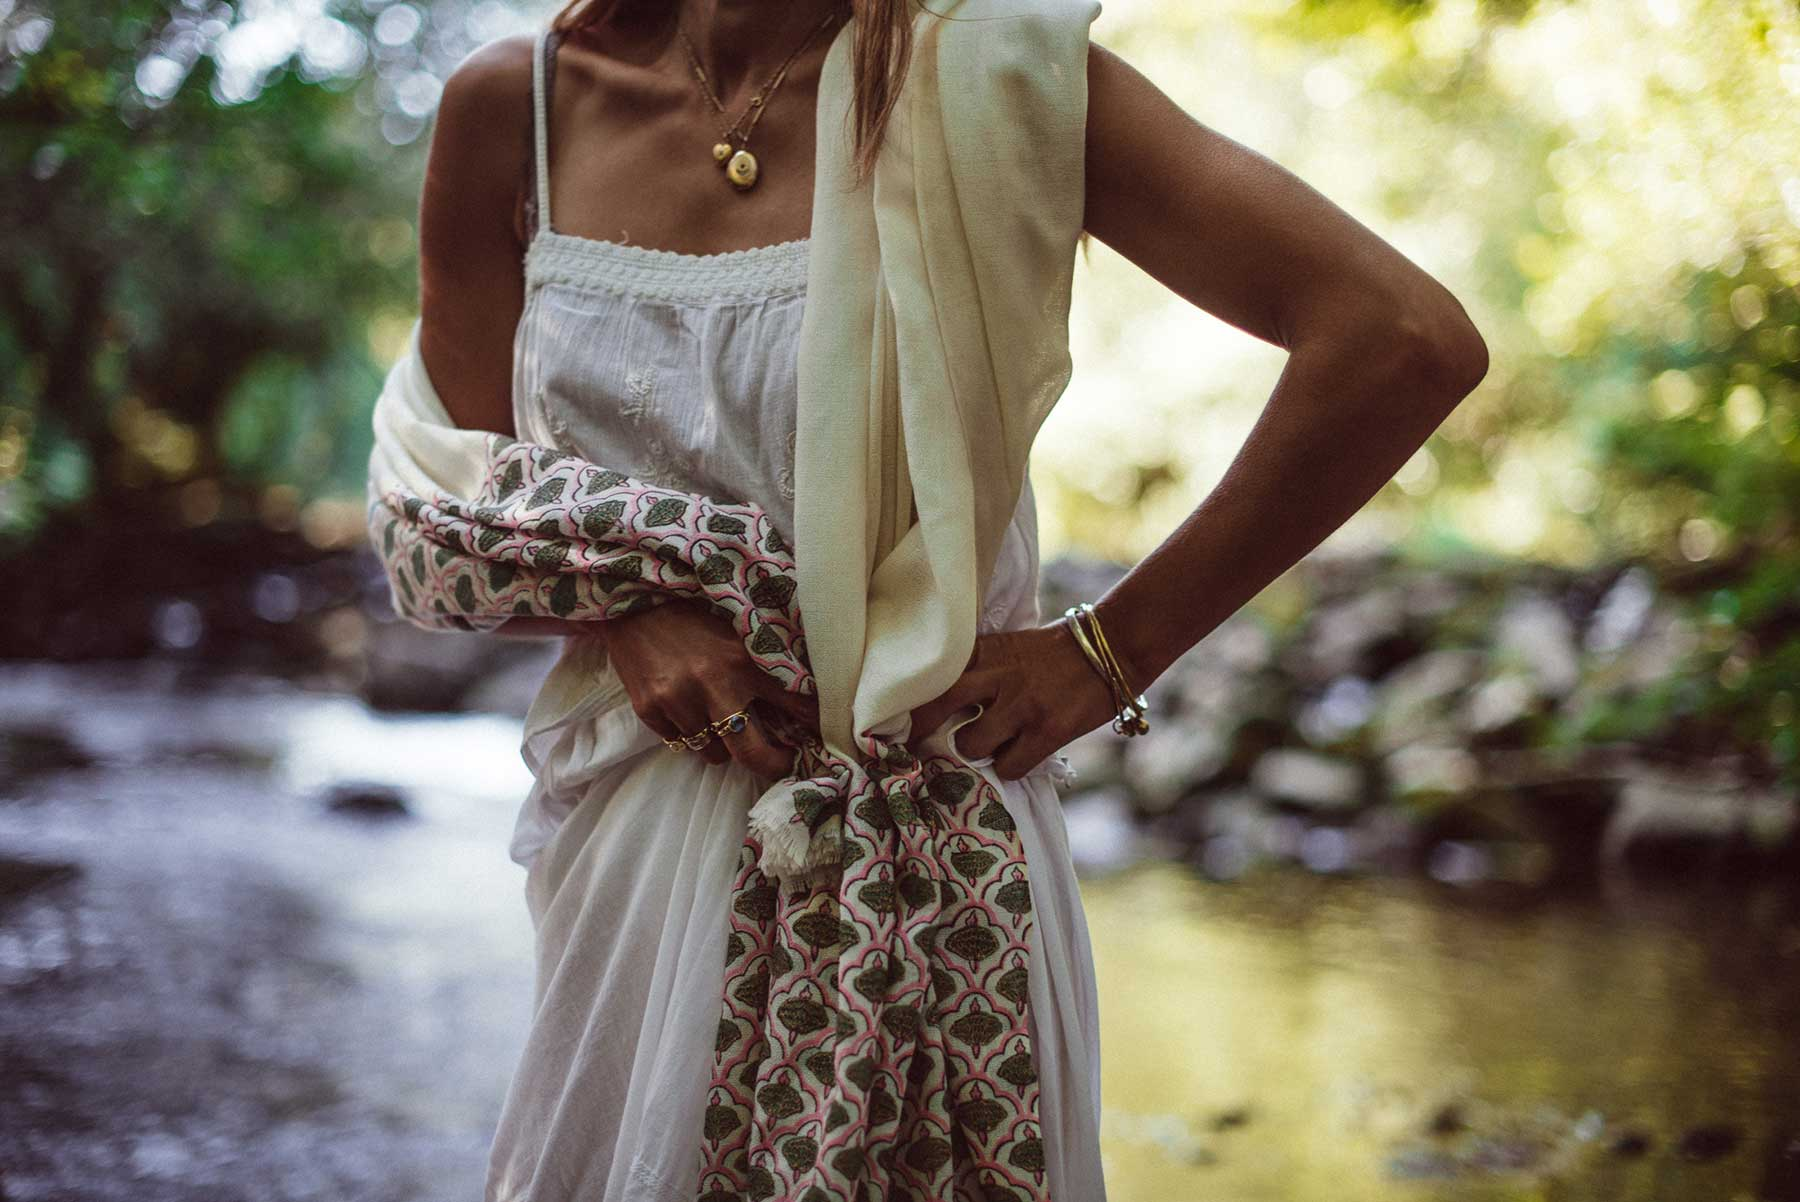 Stunning sustainable fashion dress and scarf - Beshlie McKelvie scarves and traditional arts and crafts from around the world